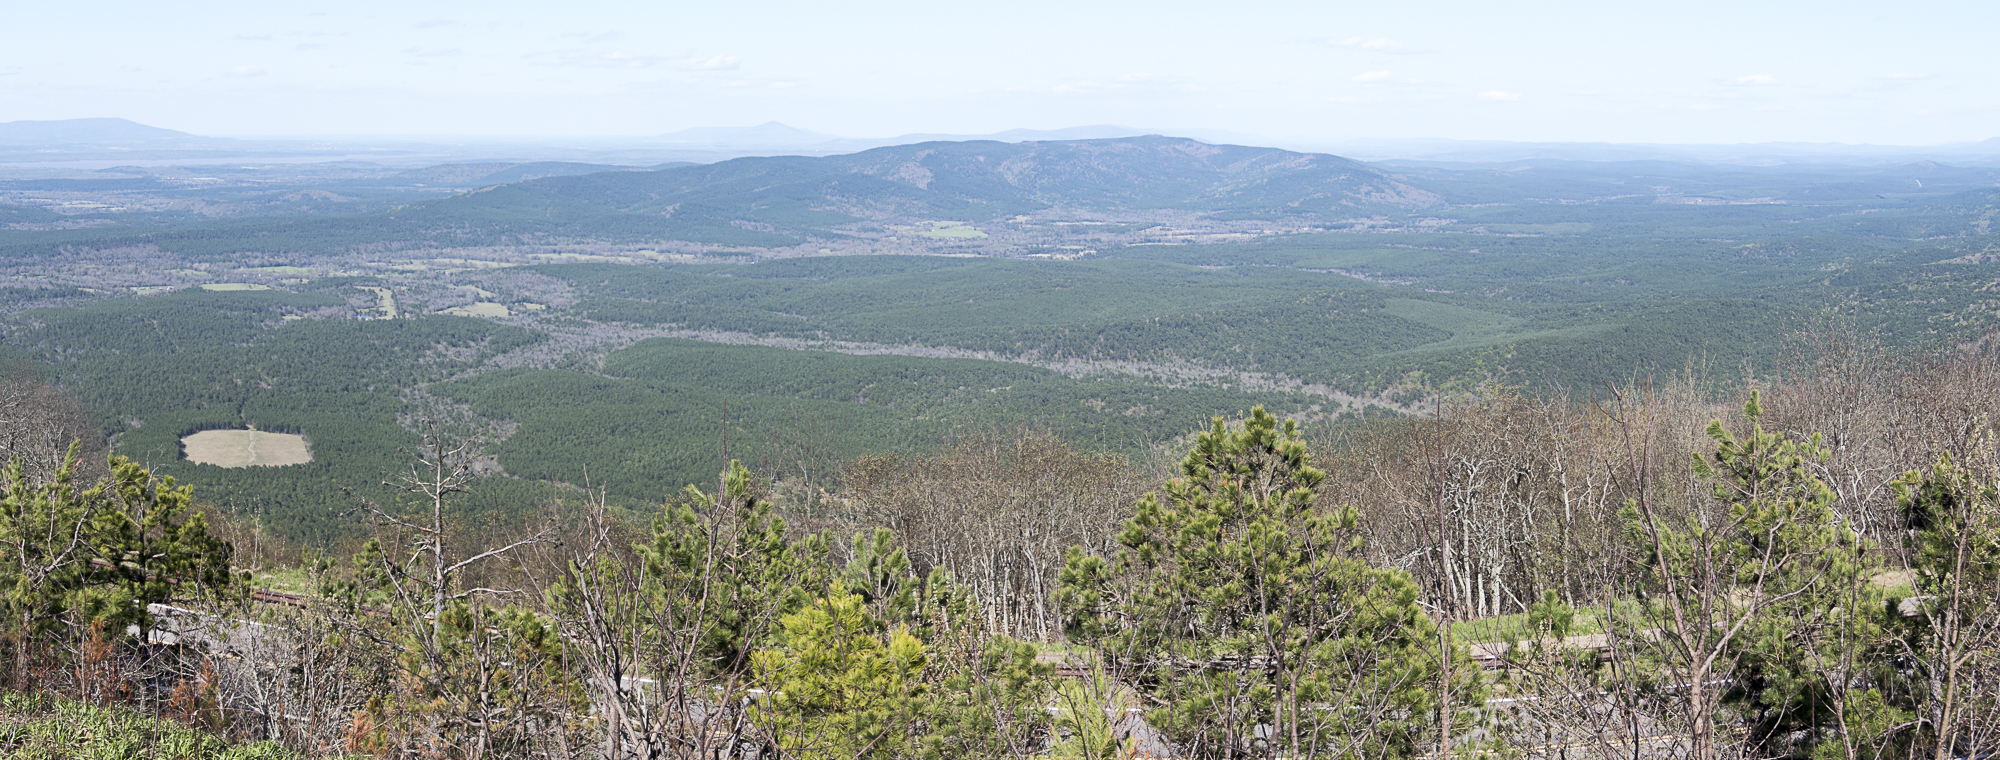 Viewpoint on the Talimena Scenic Drive